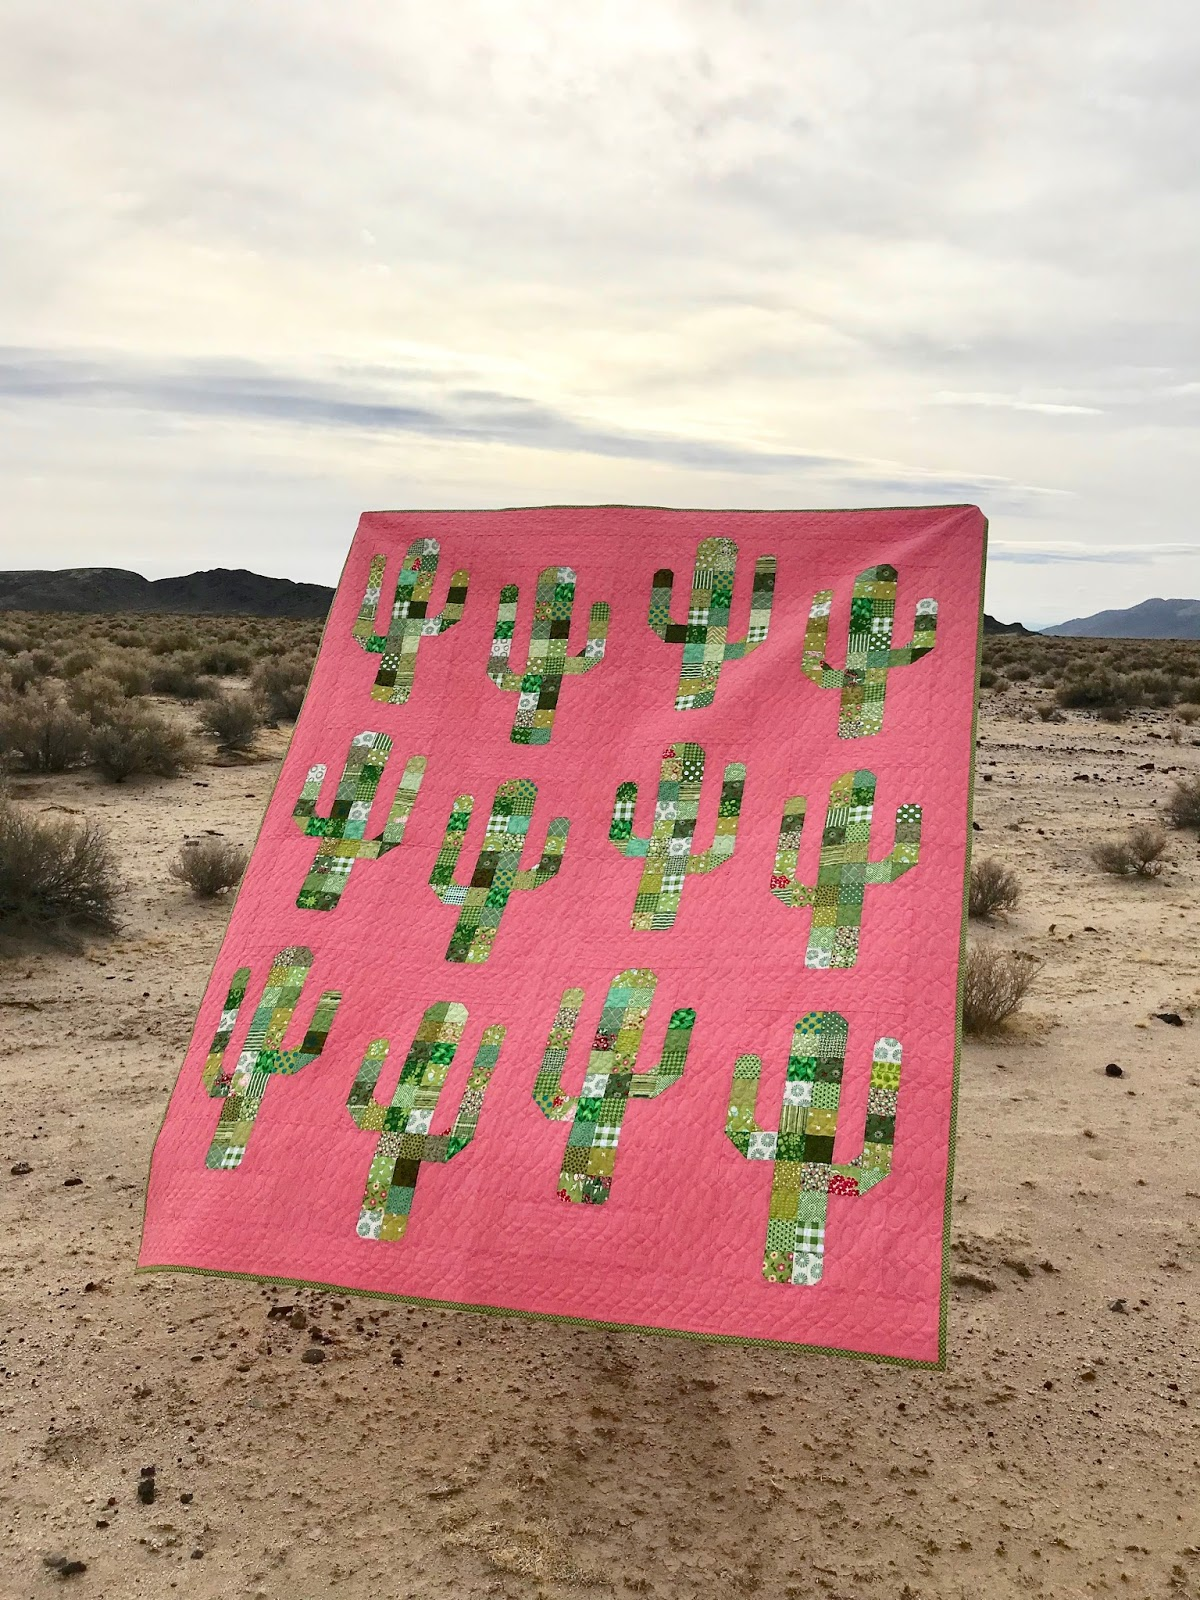 Kairle Oaks Handcrafted Goodness Saguaro Quilt Tutorial